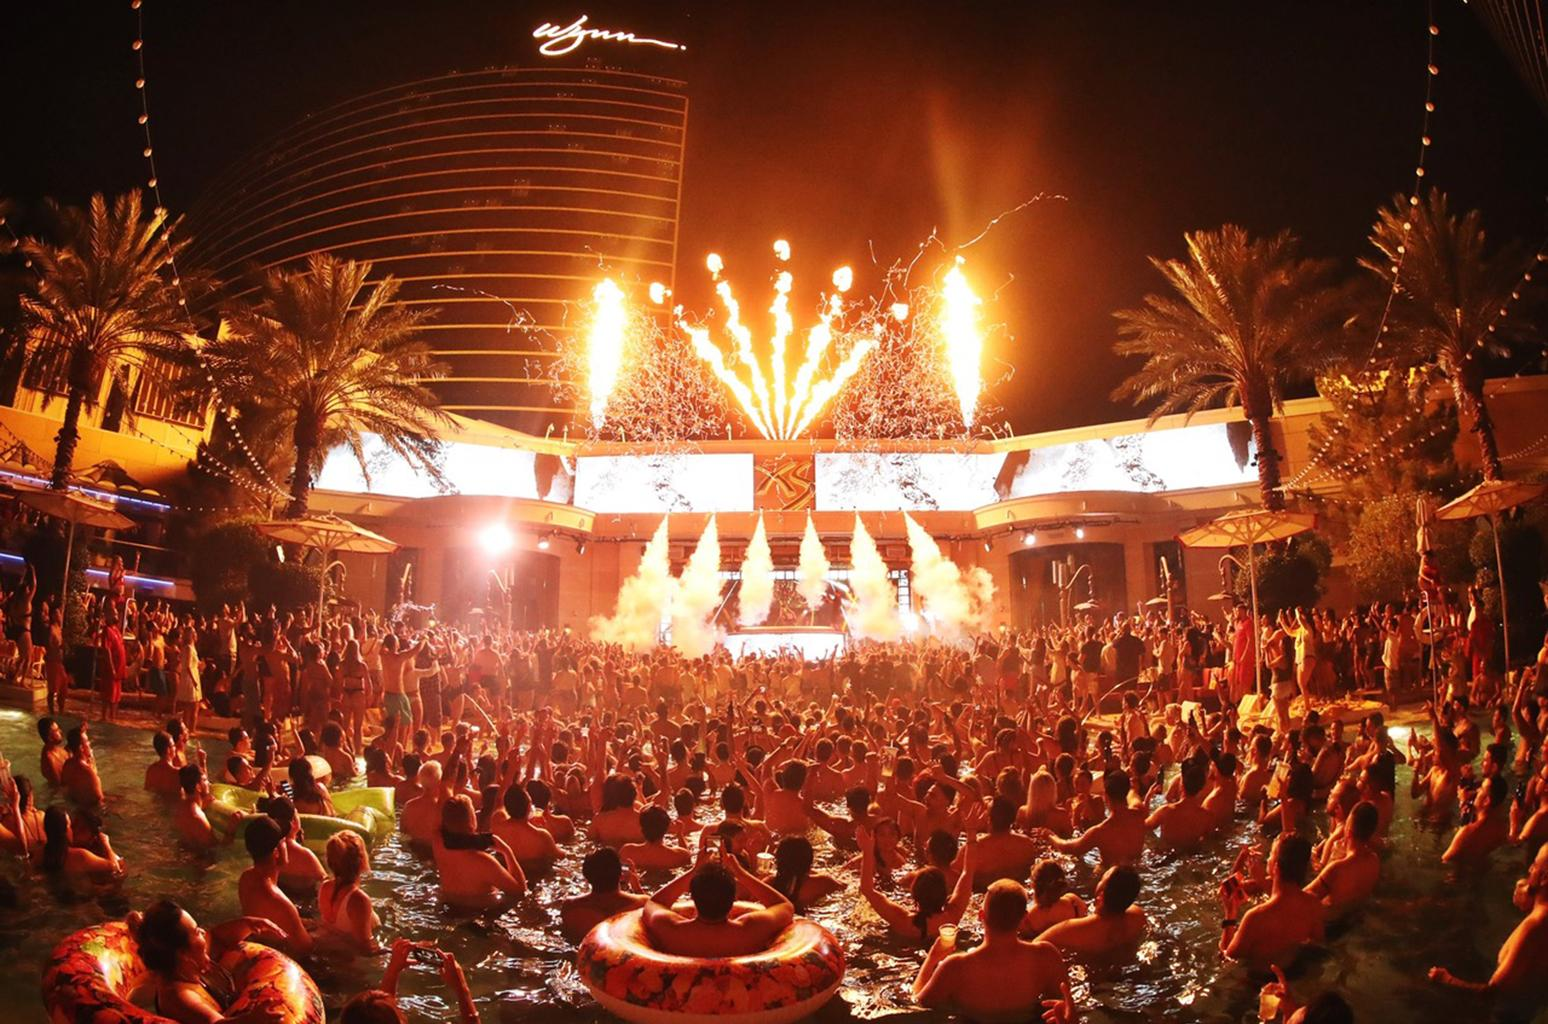 Download this Top Las Vegas Nightclubs picture